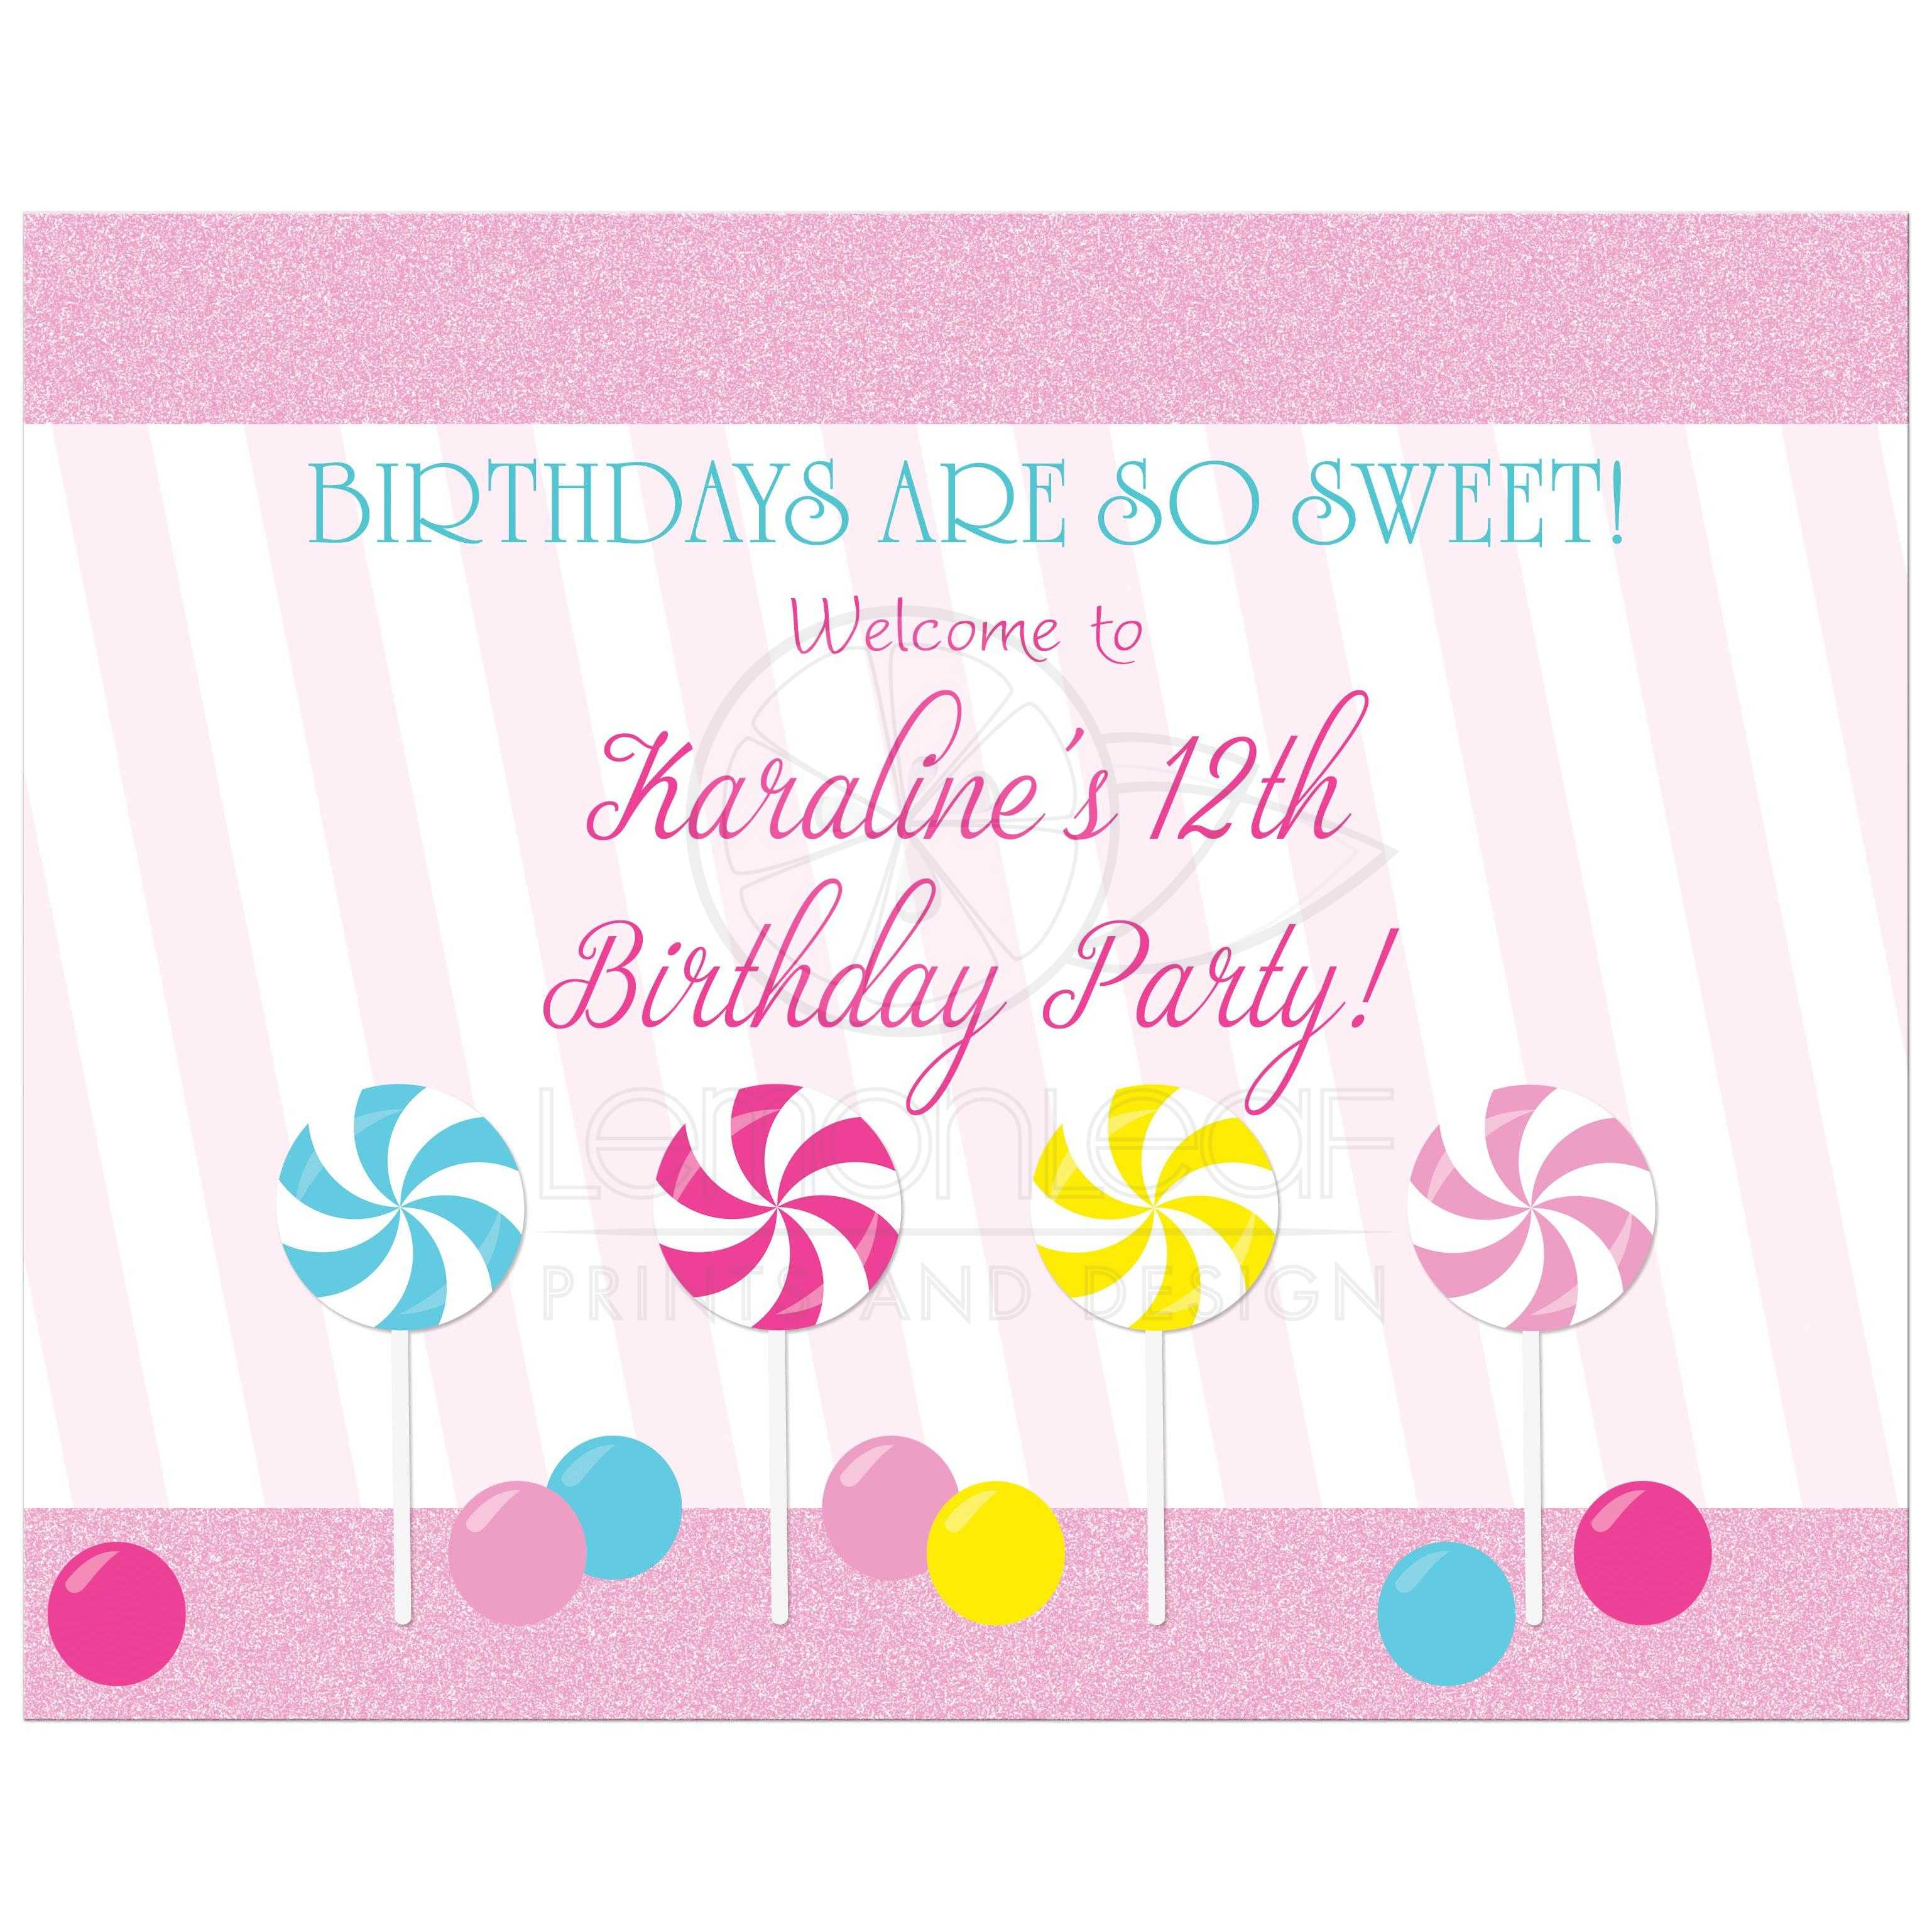 Birthday Party Sign - Pink Sweet Candy Lollipop Buffet